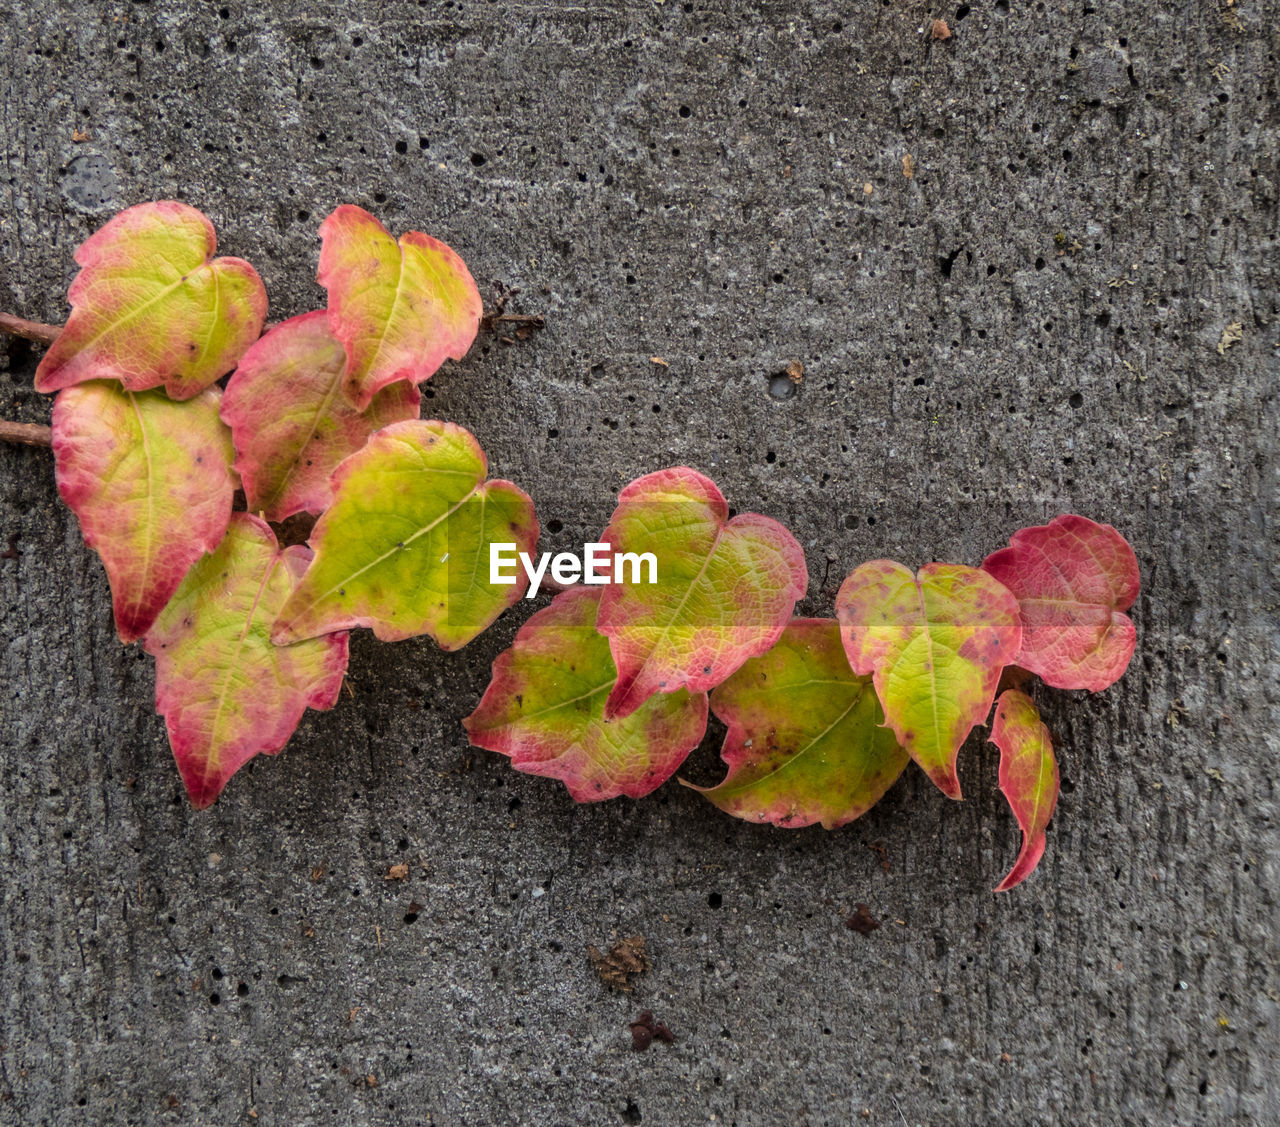 leaf, change, fruit, close-up, autumn, high angle view, outdoors, no people, day, nature, road, red, green color, growth, food, freshness